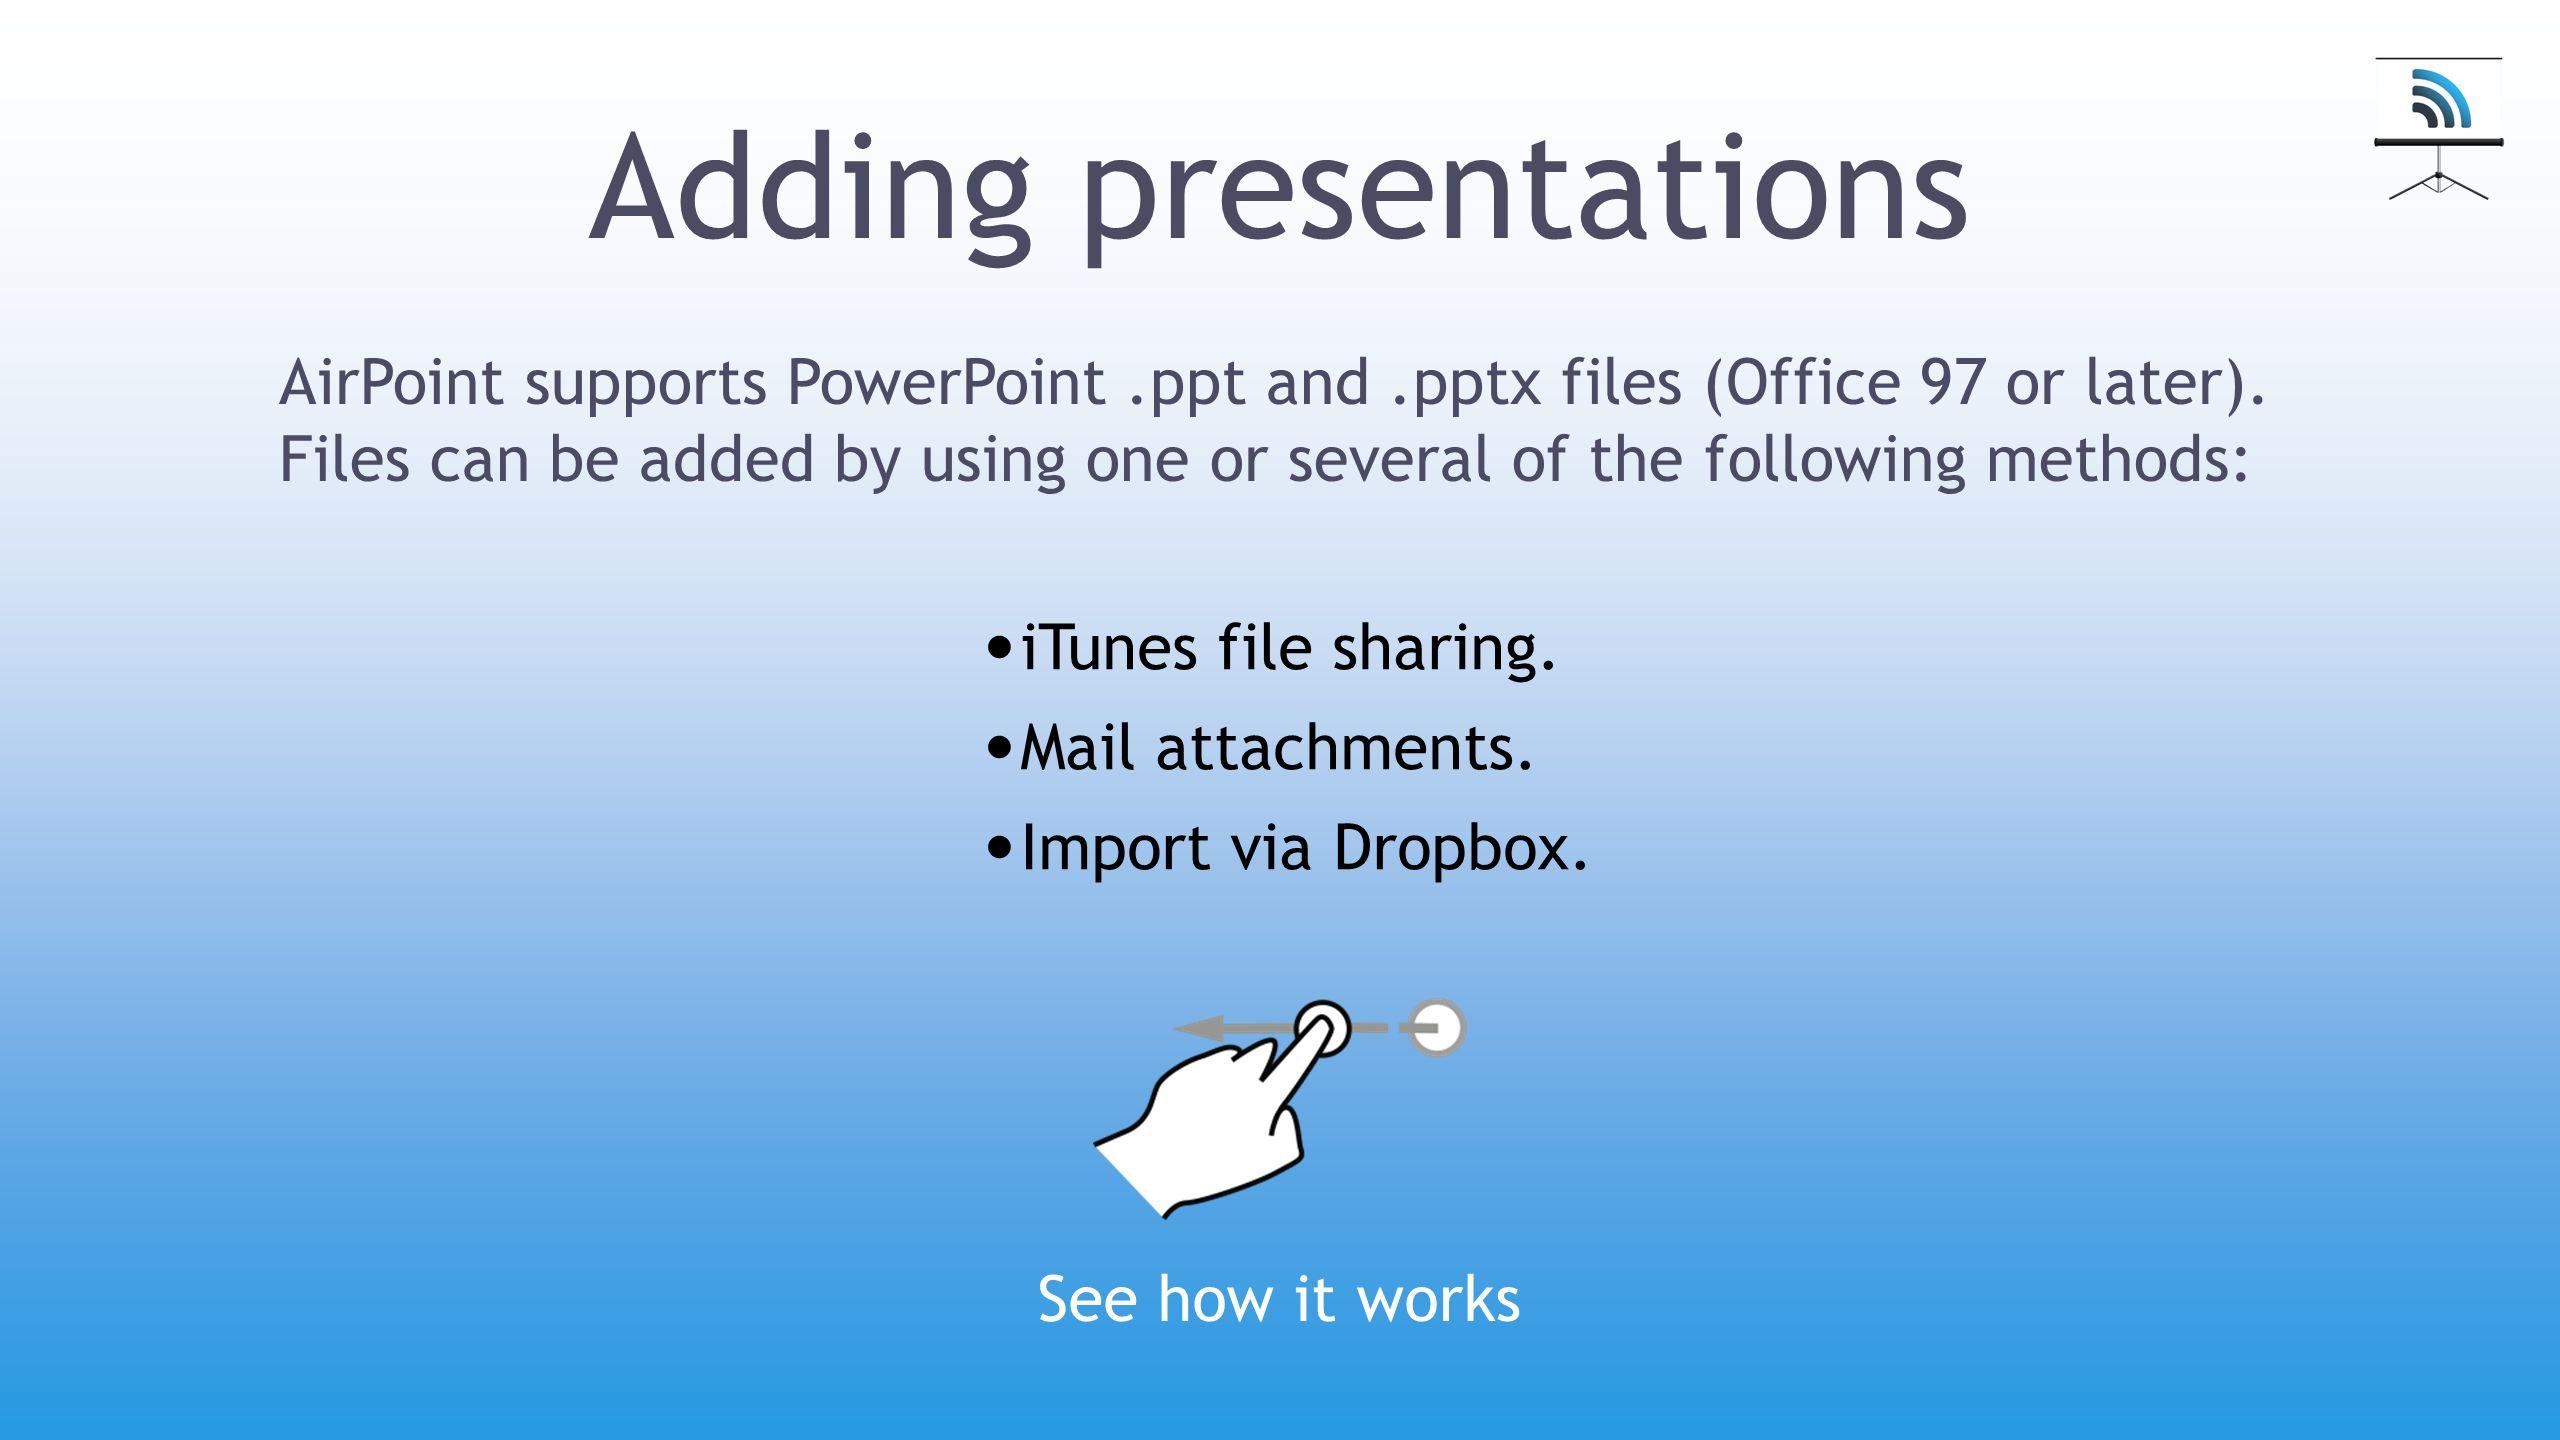 Adding presentations iTunes file sharing. Mail attachments.